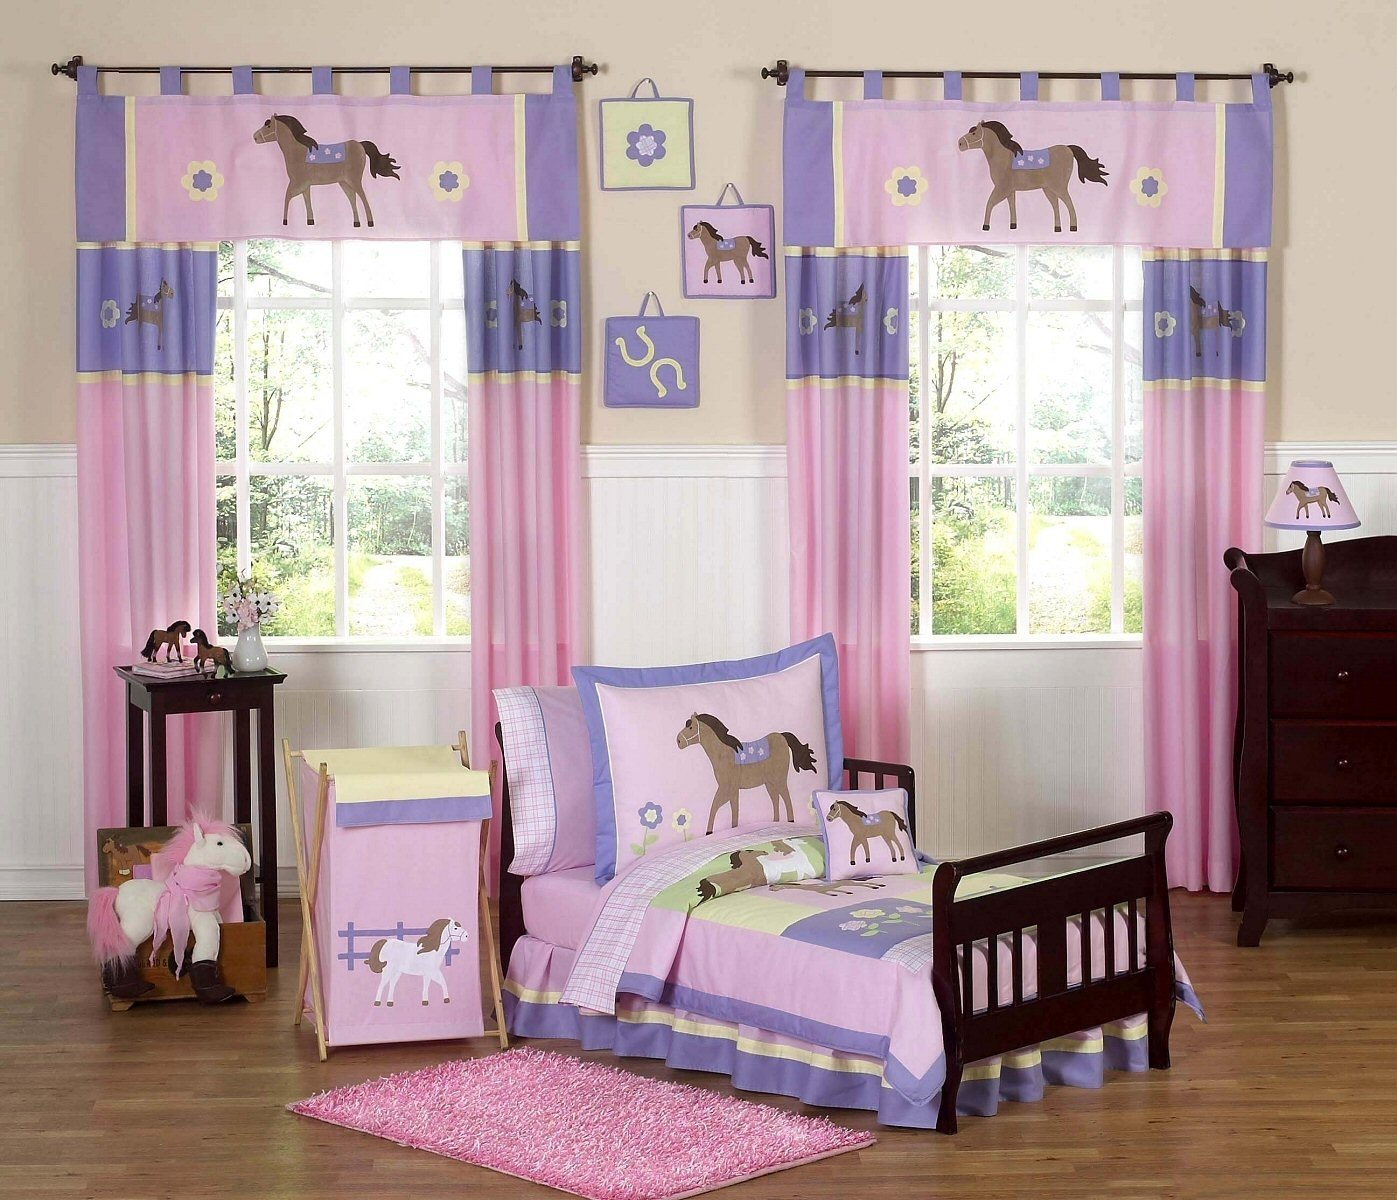 10 Nice Cute Little Girl Room Ideas girls bedroom cute horse theme in pink and purple color scheme 2020